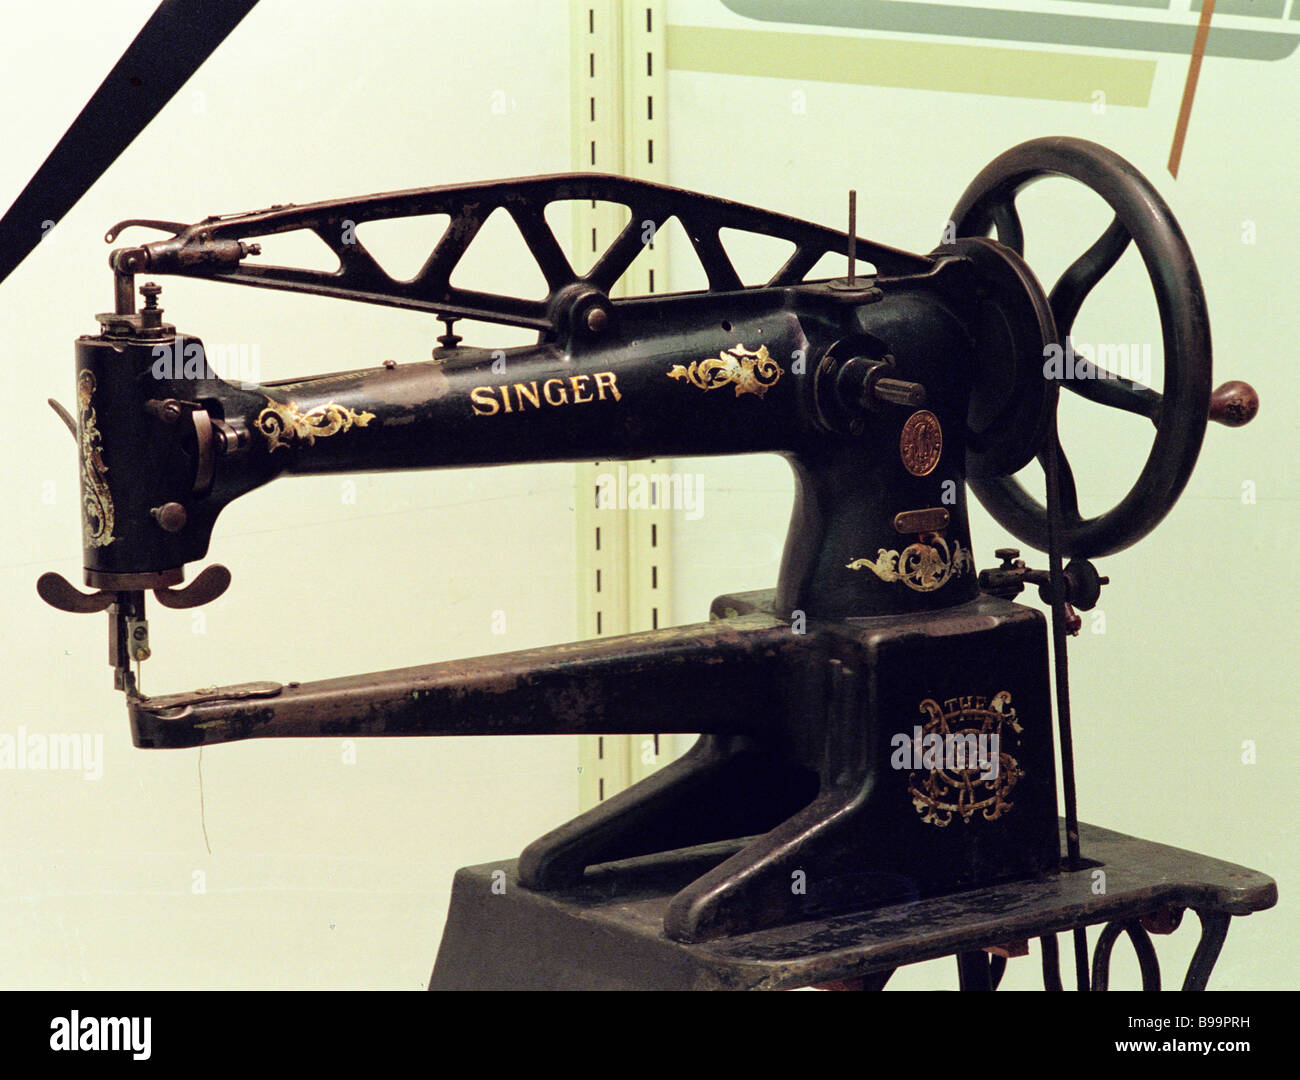 A shuttle stitch sewing machine by Singer at the Preserved Relics exhibition held in the State Polytechnic Museum - Stock Image